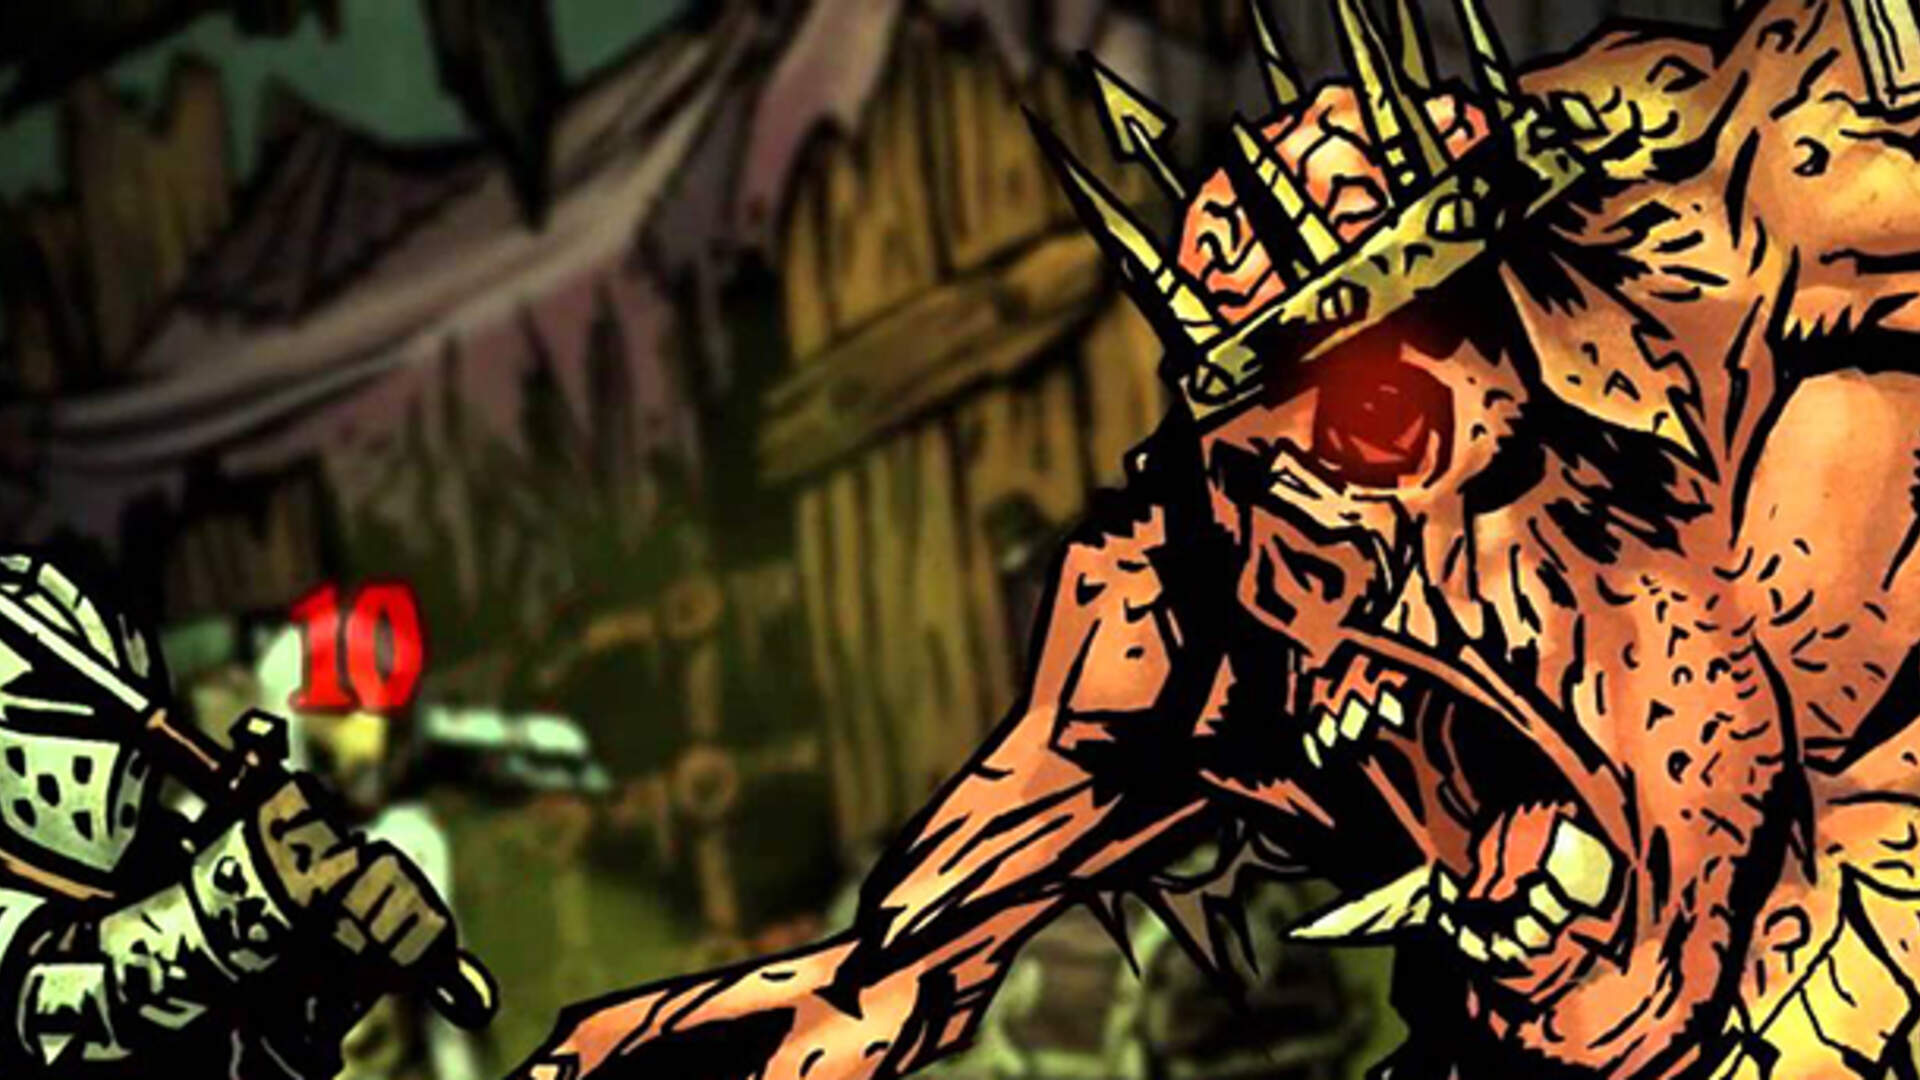 Darkest Dungeon is a Must-Own for Nintendo Switch RPG Fans